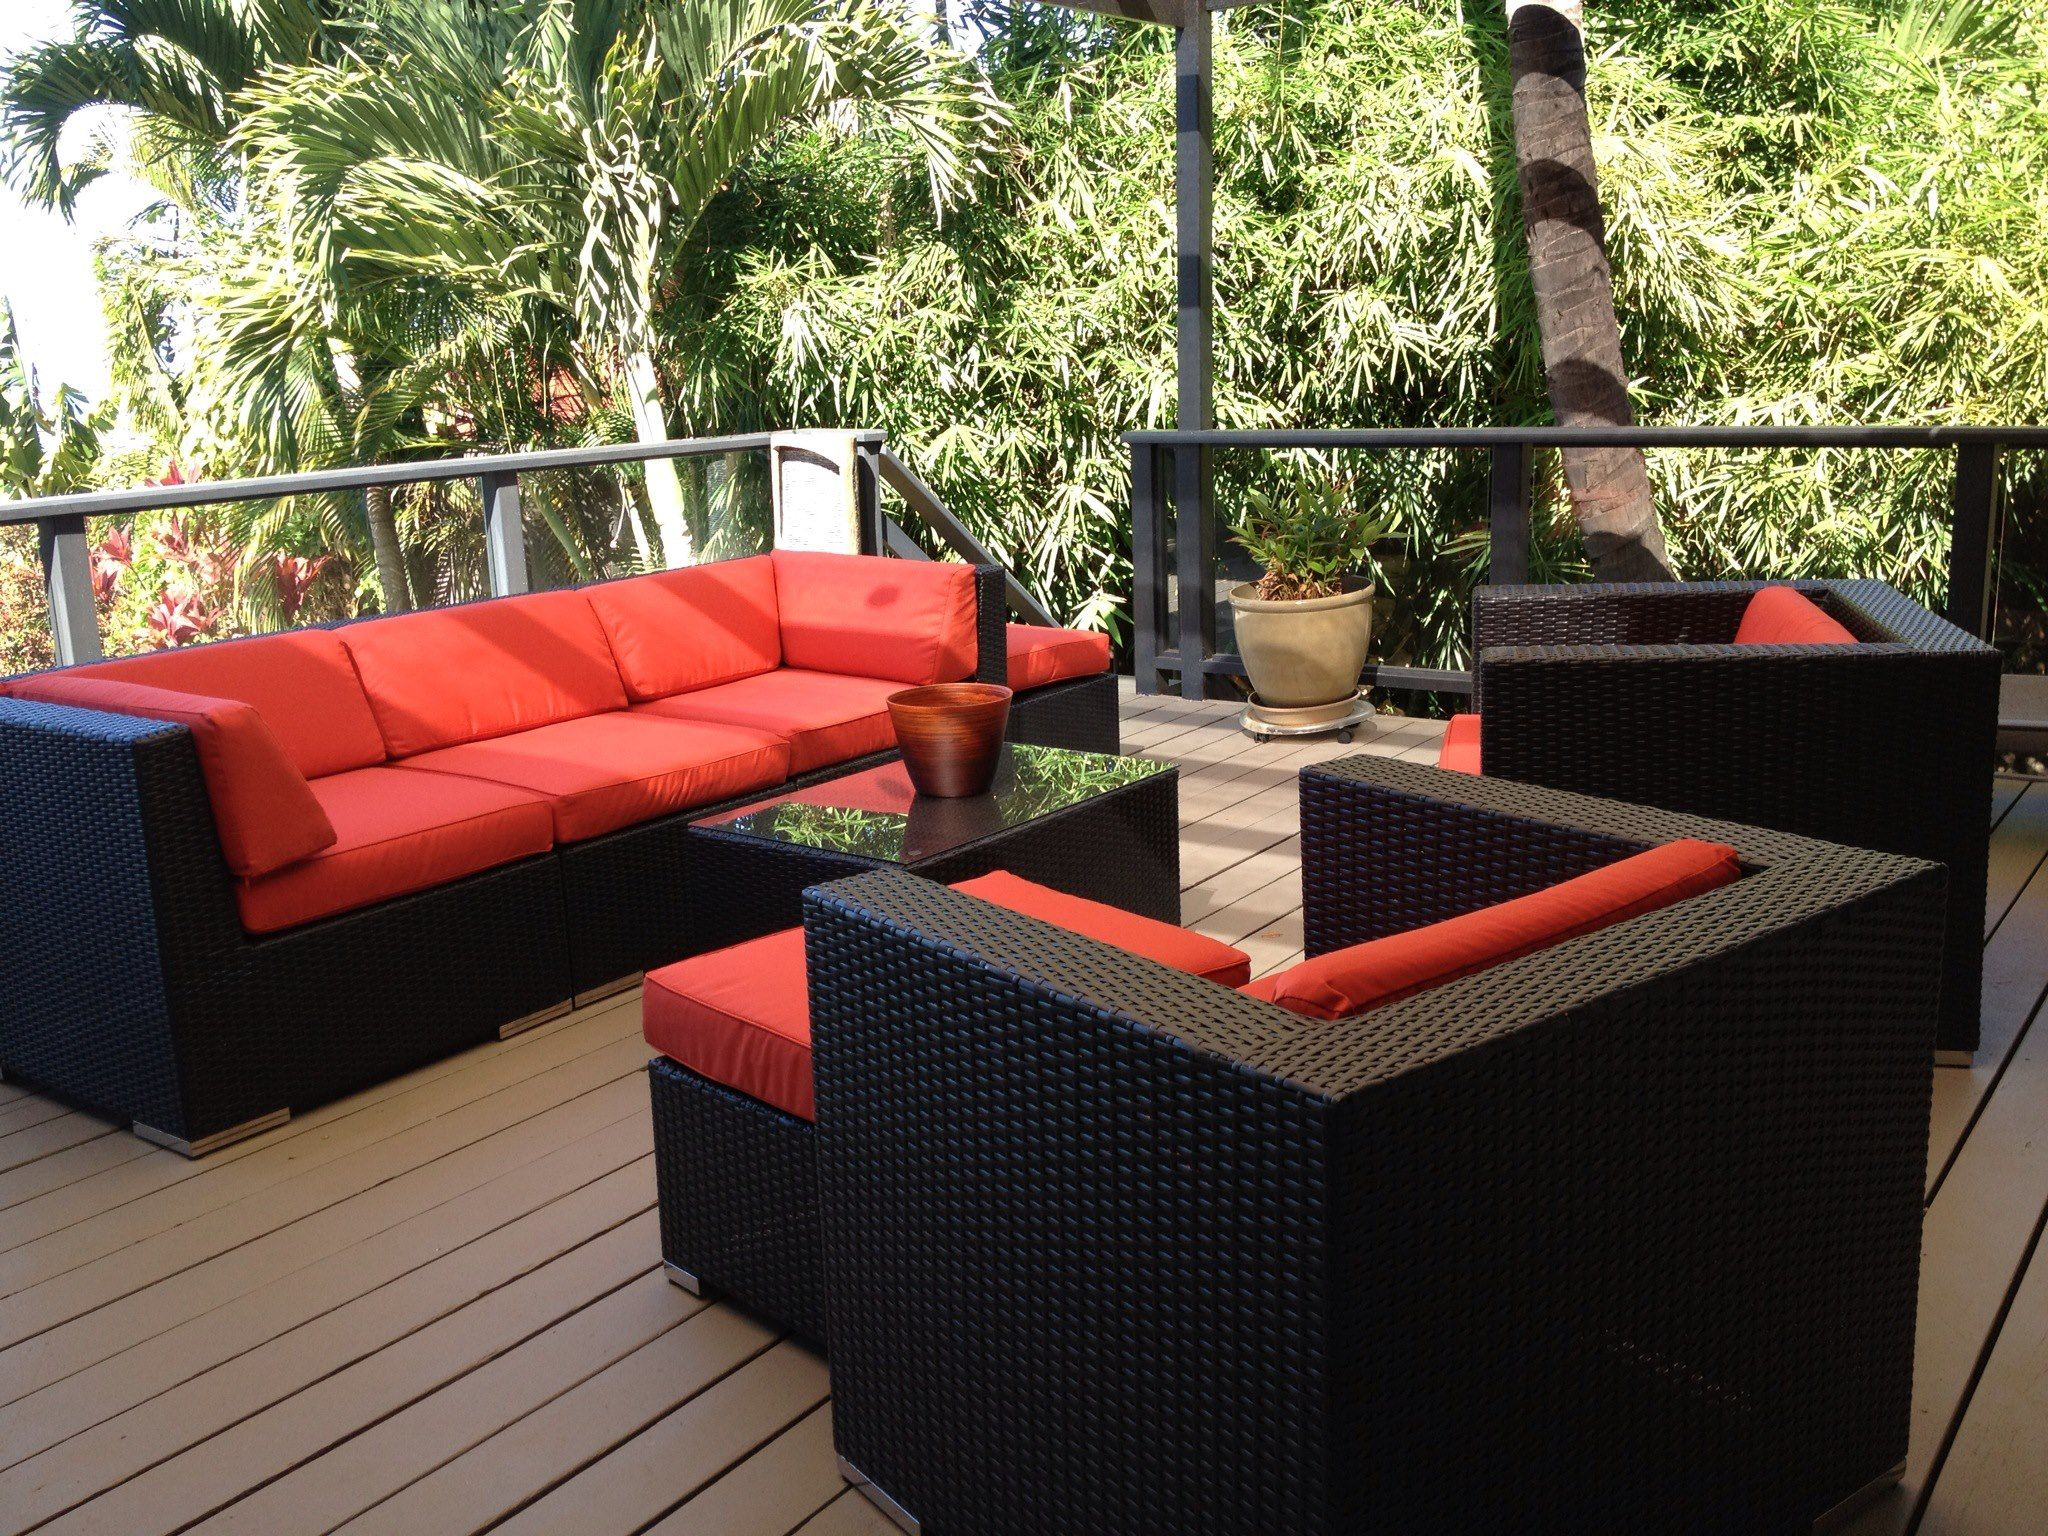 in modern wicker furniture inspirational of ideas patio design review seating ohana set and outdoor deep elegant house